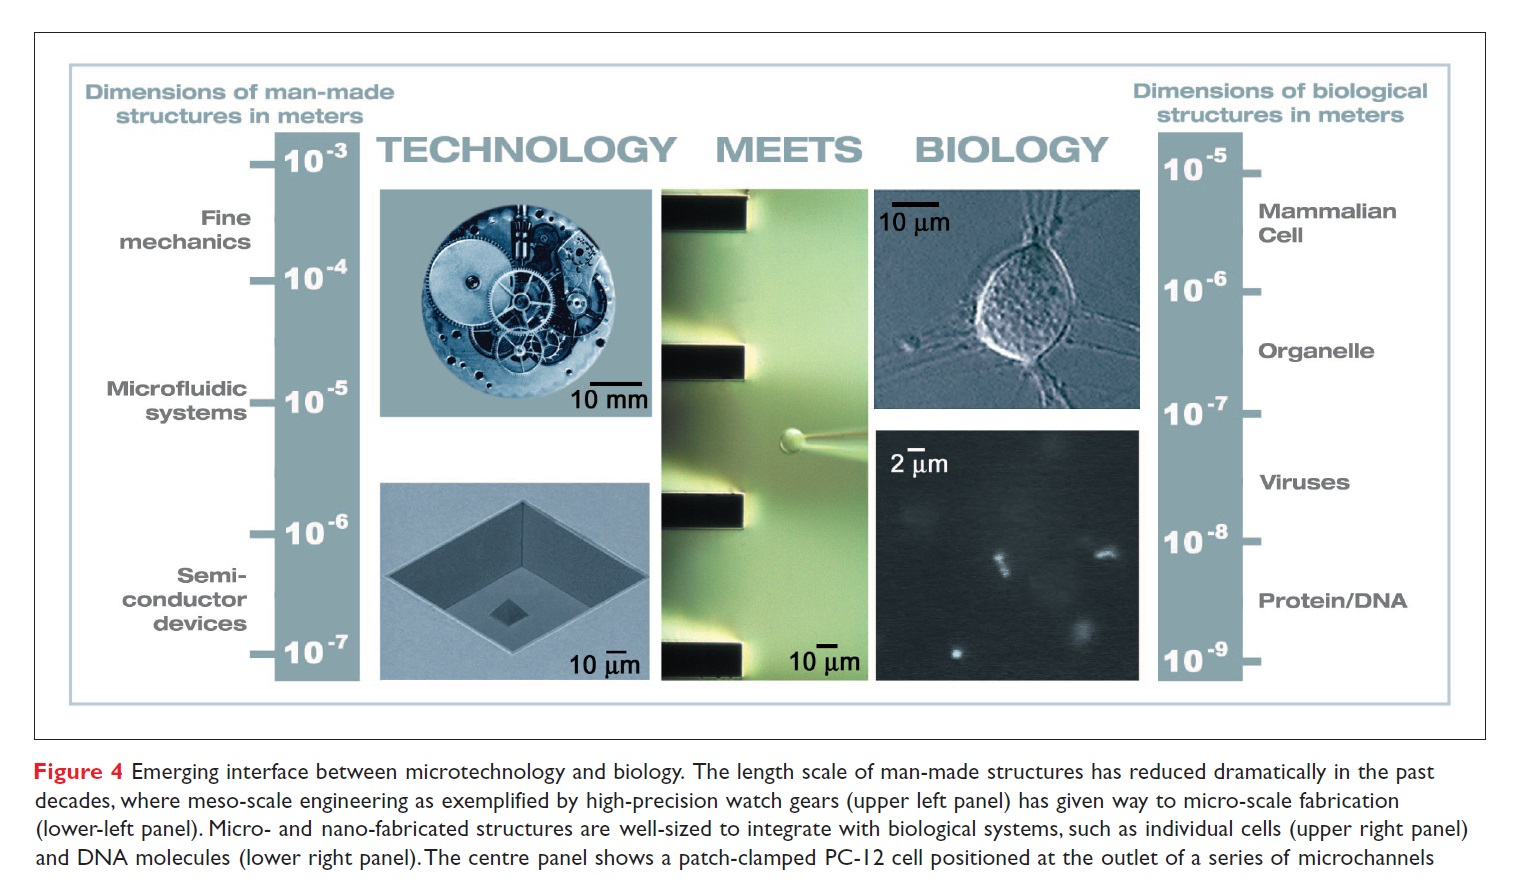 Figure 4 Emerging interface between microtechnology and biology